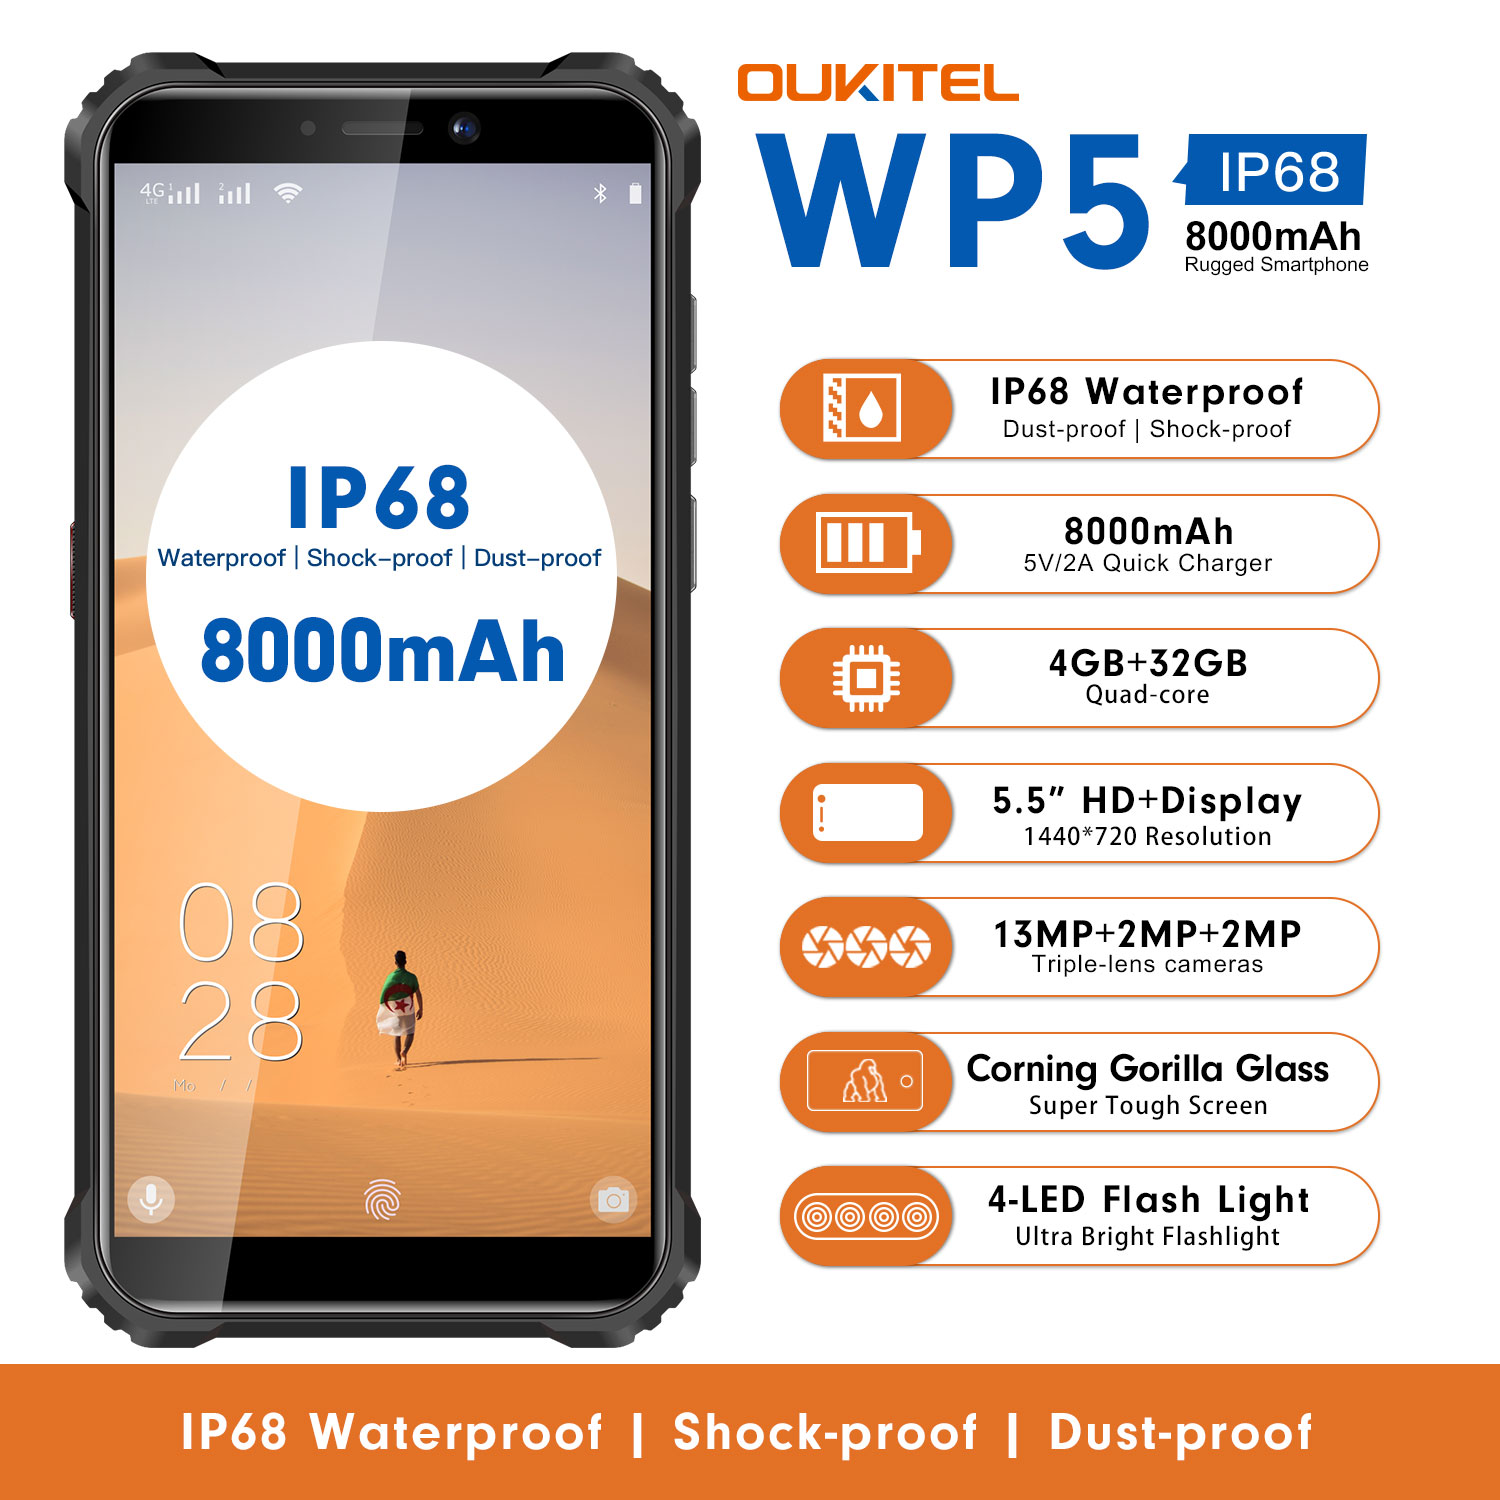 Oukitel WP5 review